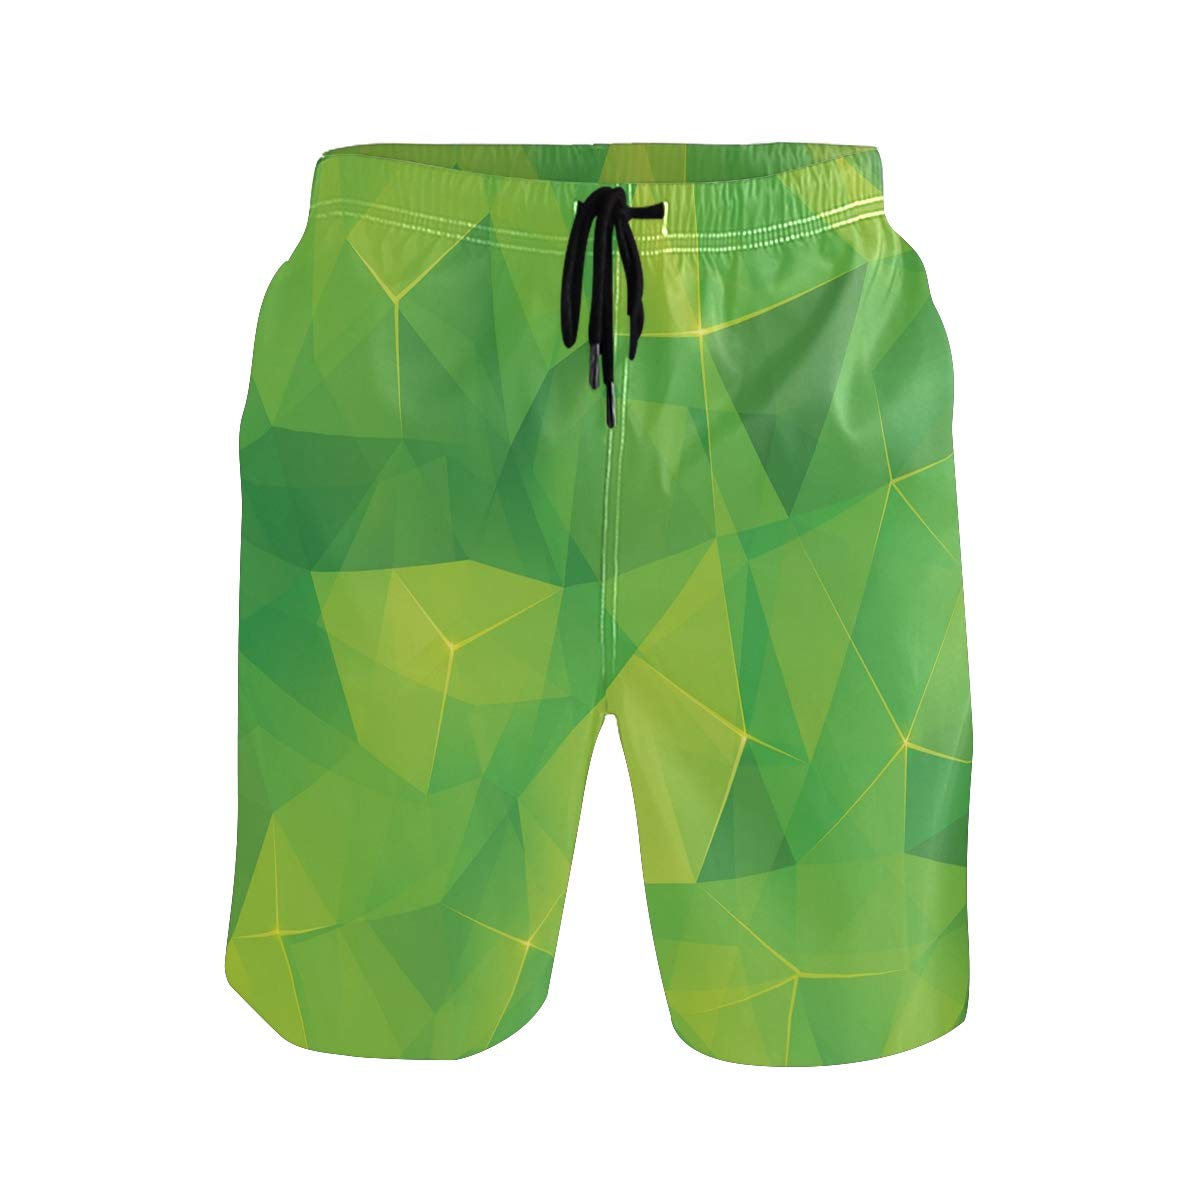 KVMV Abstract Texture with Skull and Crossbones Pattern Aged Quick Dry Beach Shorts